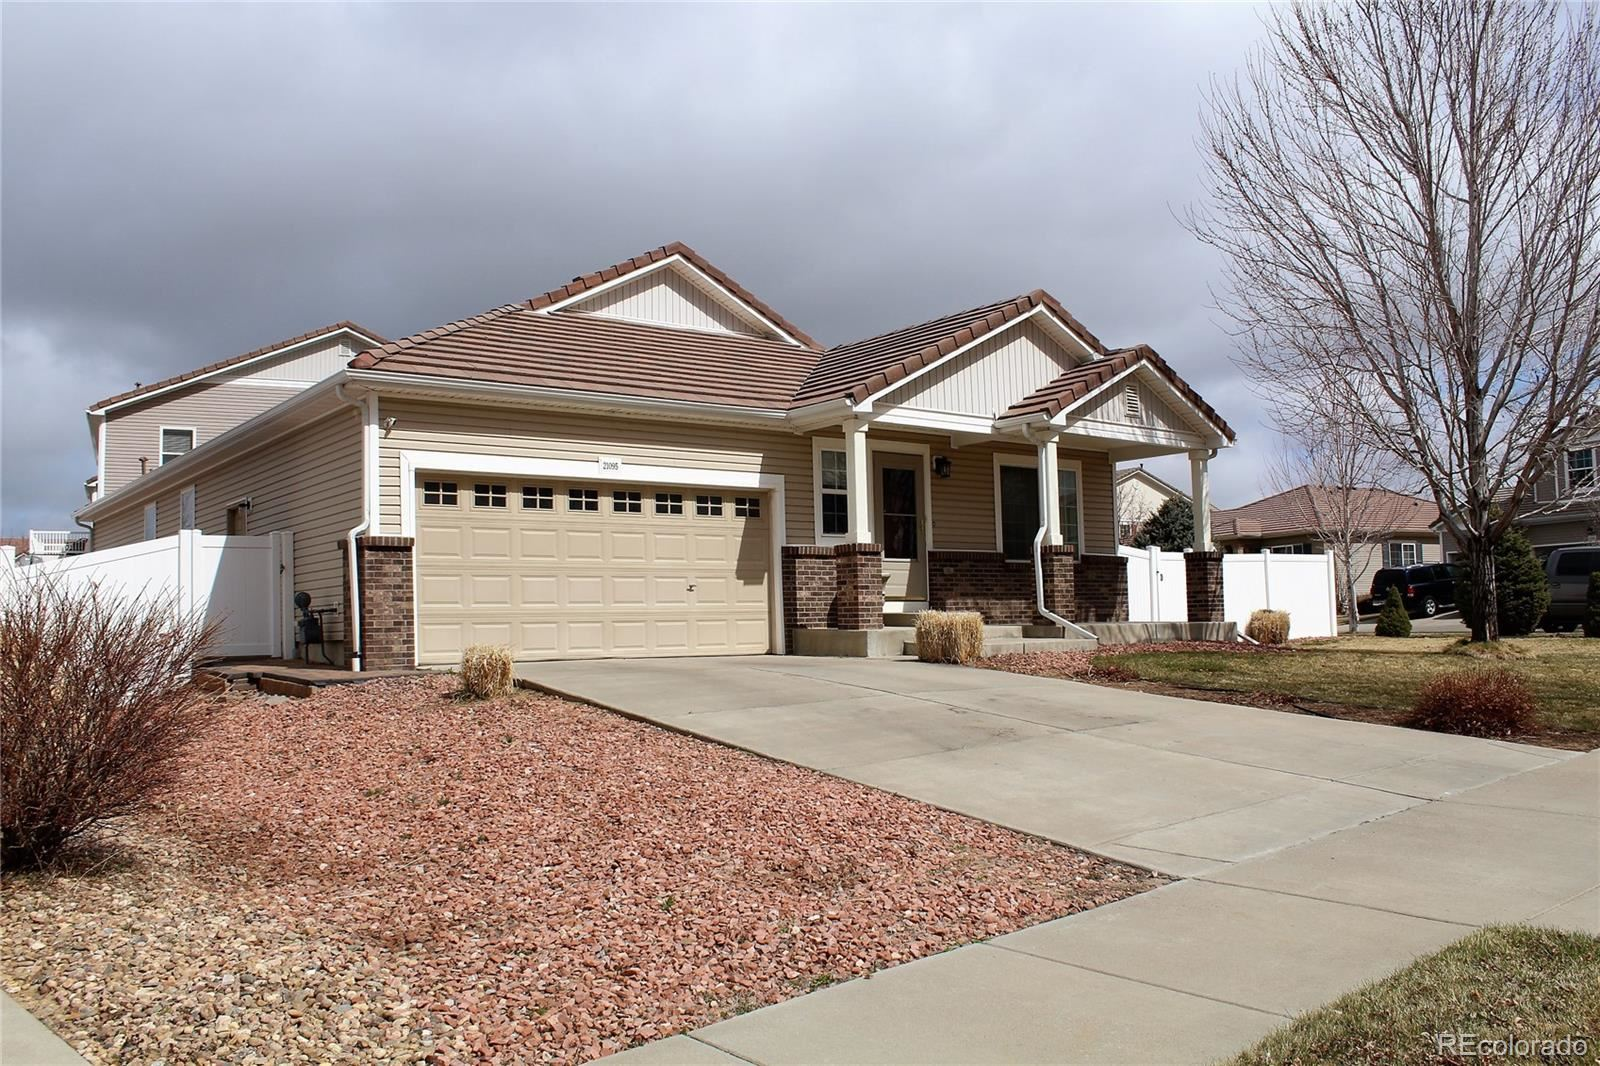 21095 E 53rd Place, Denver, CO 80249 - #: 9316202